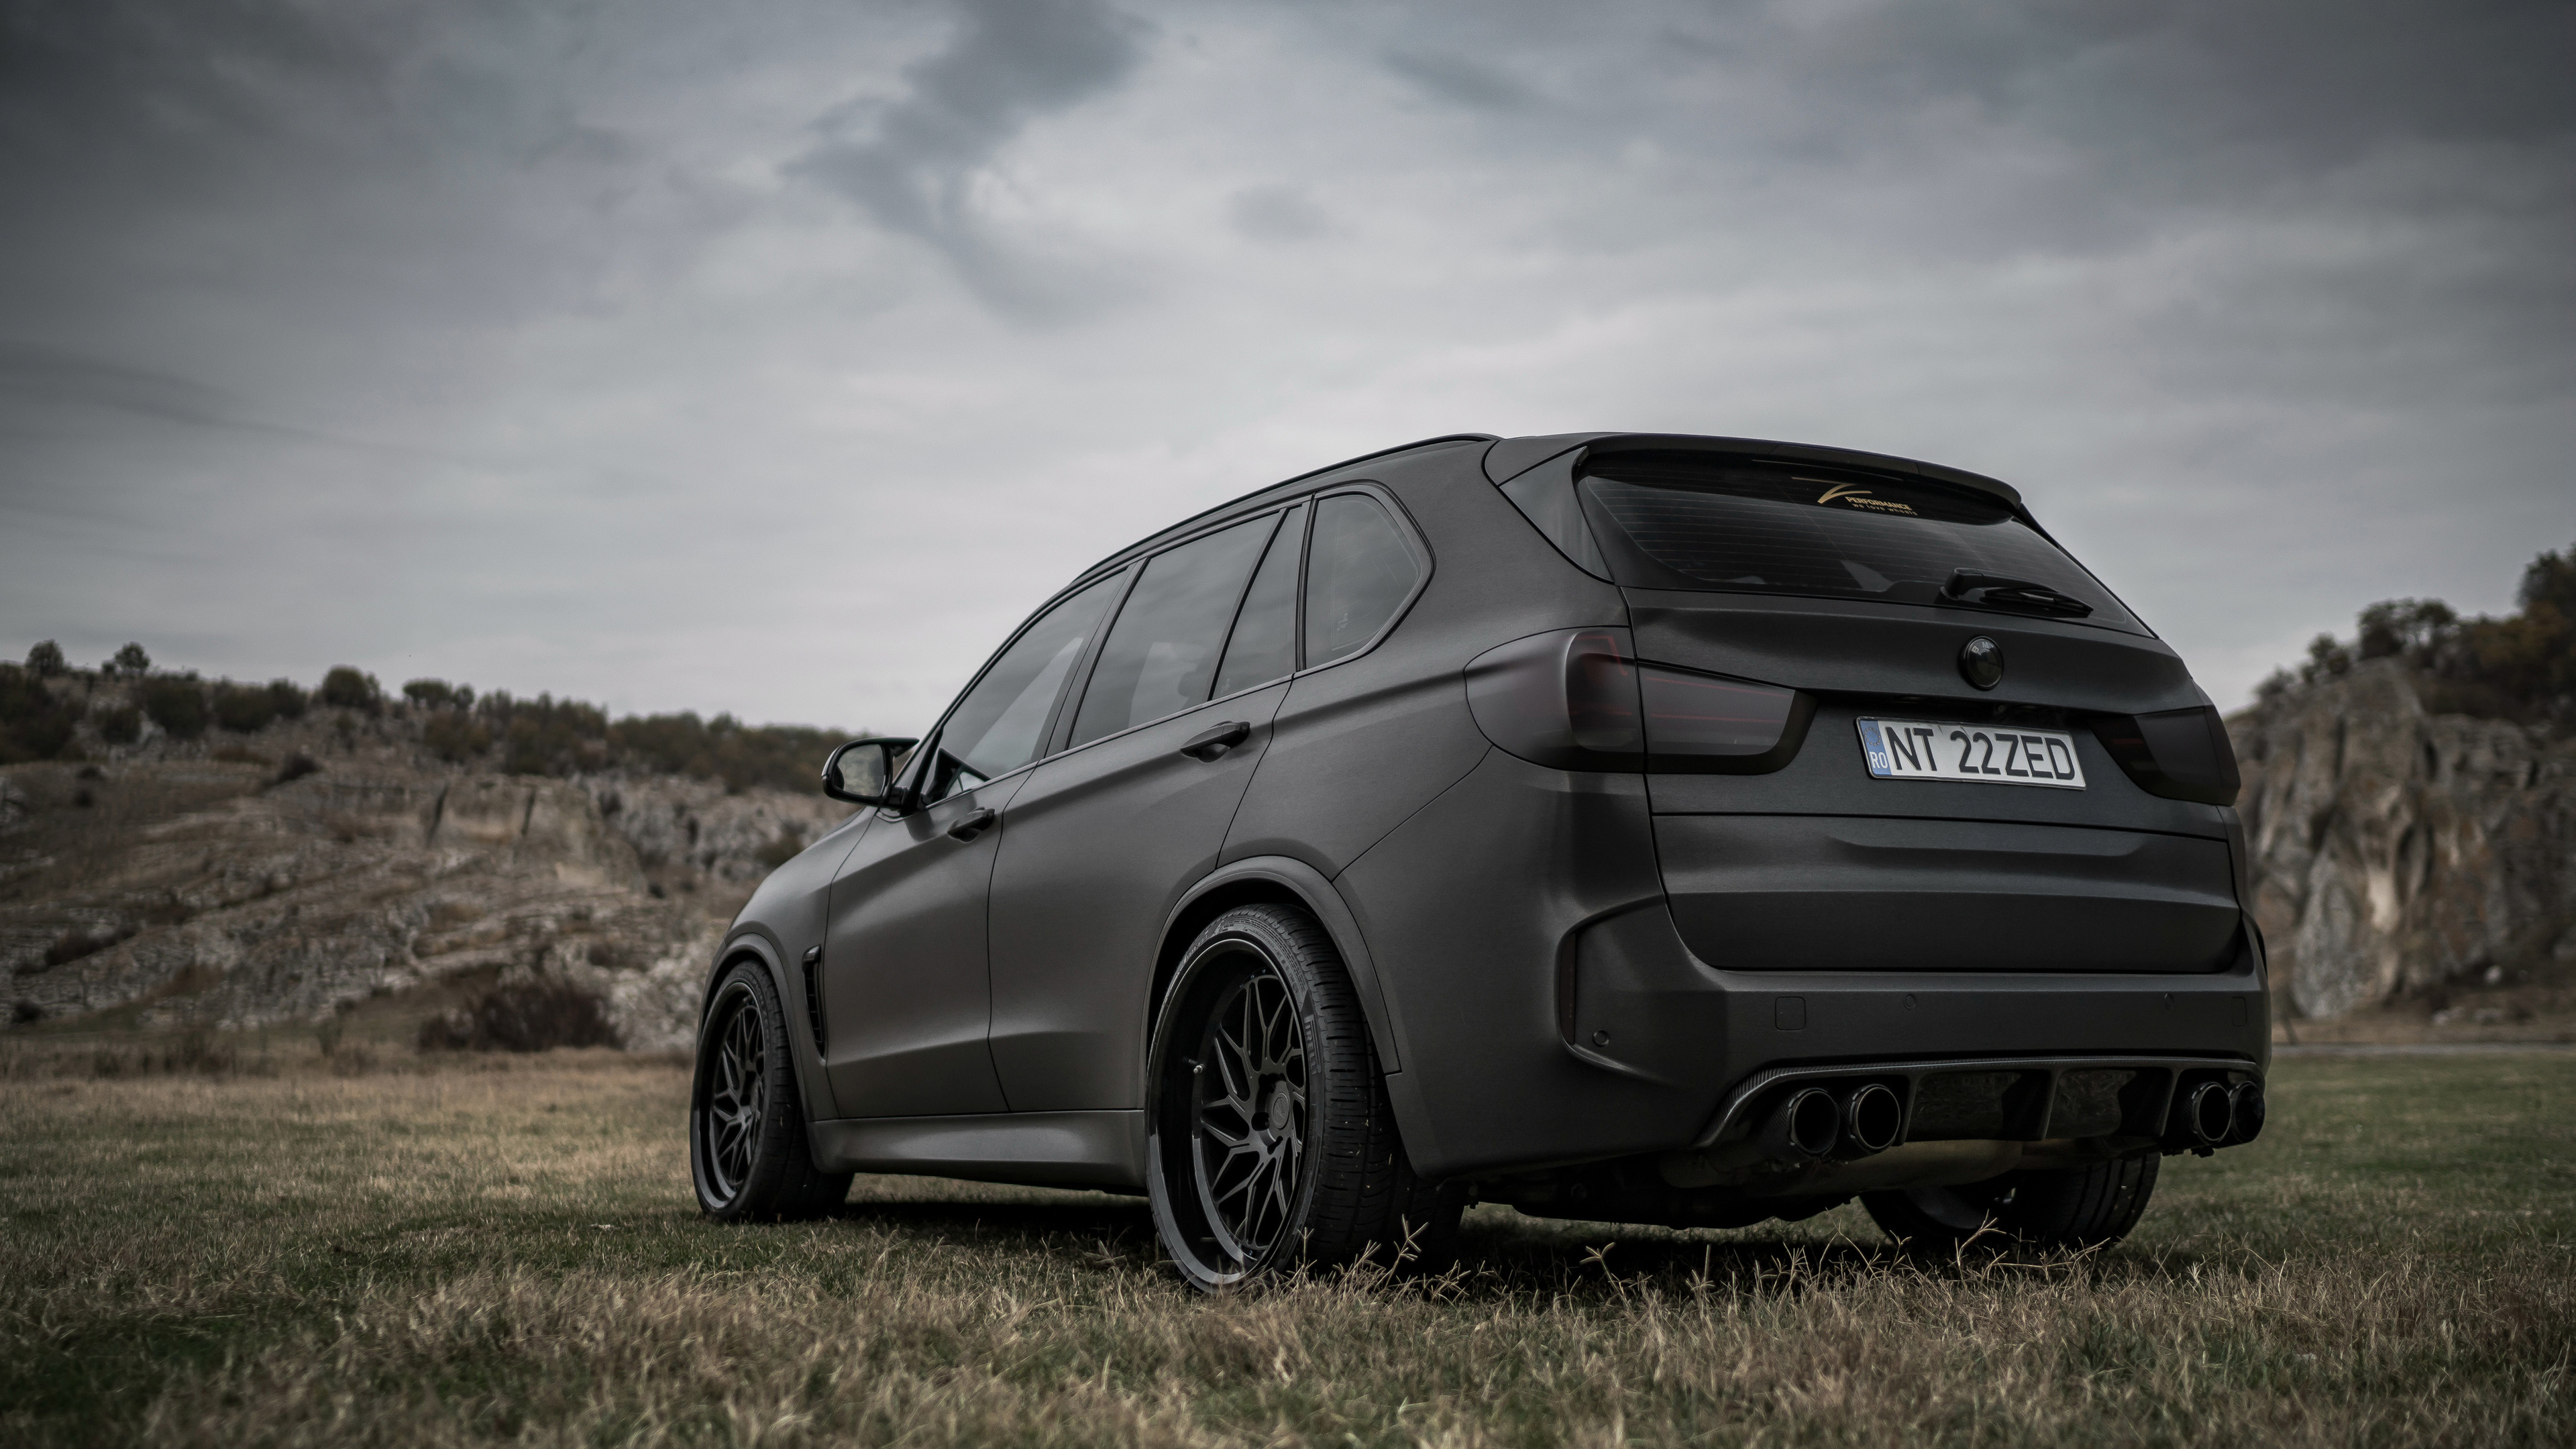 z performance bmw x5 black matte rear 1539109212 - Z Performance BMW X5 Black Matte Rear - hd-wallpapers, cars wallpapers, bmw x5 wallpapers, bmw wallpapers, 4k-wallpapers, 2018 cars wallpapers